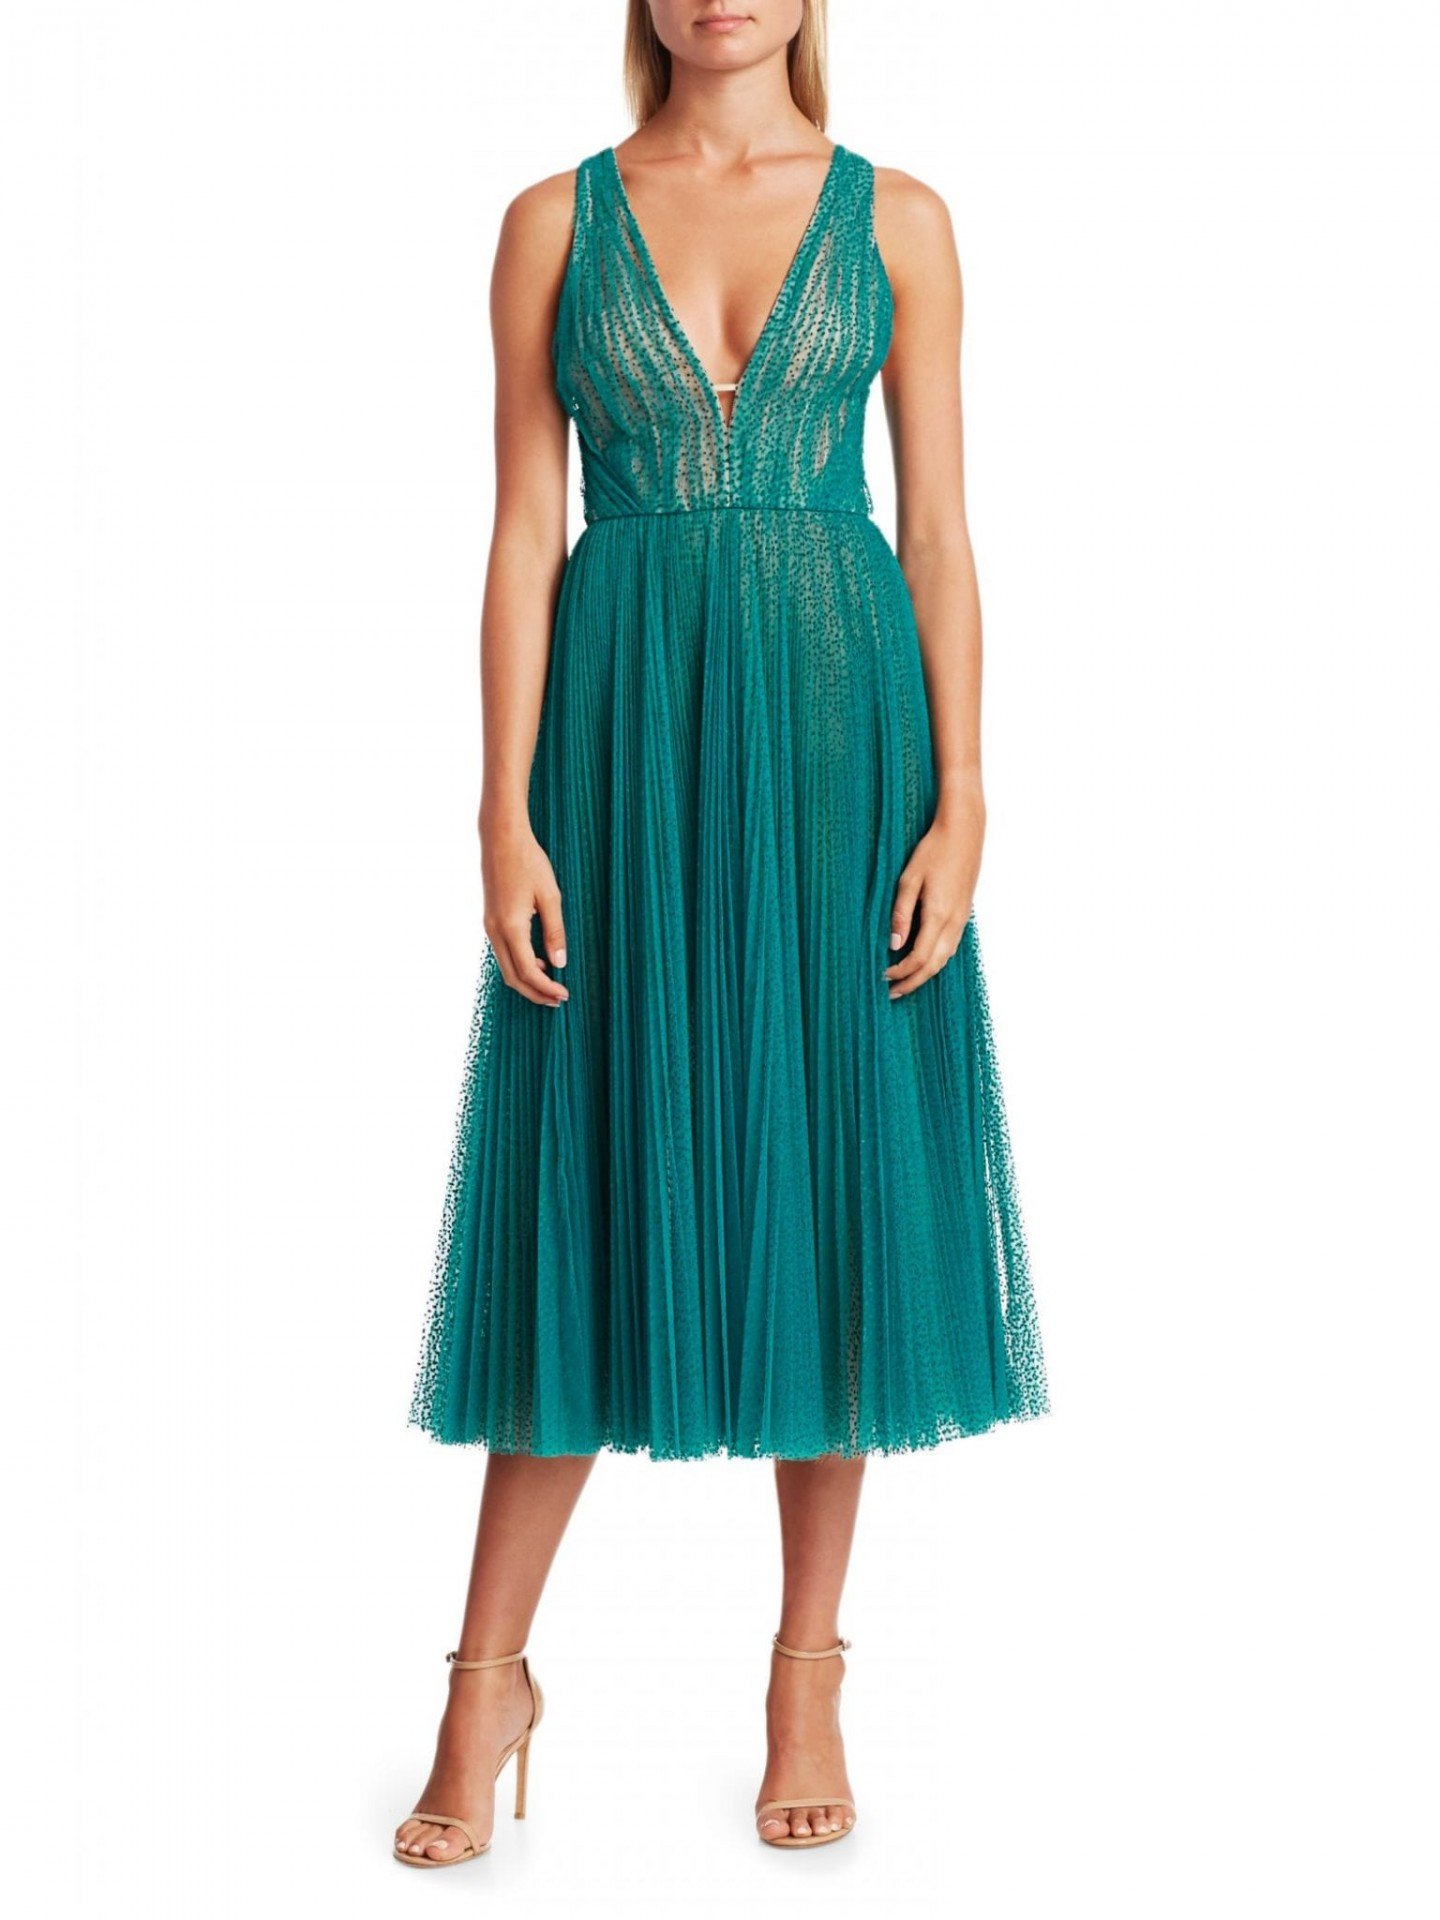 J. MENDEL Swiss Dot Pleated Cocktail Dress